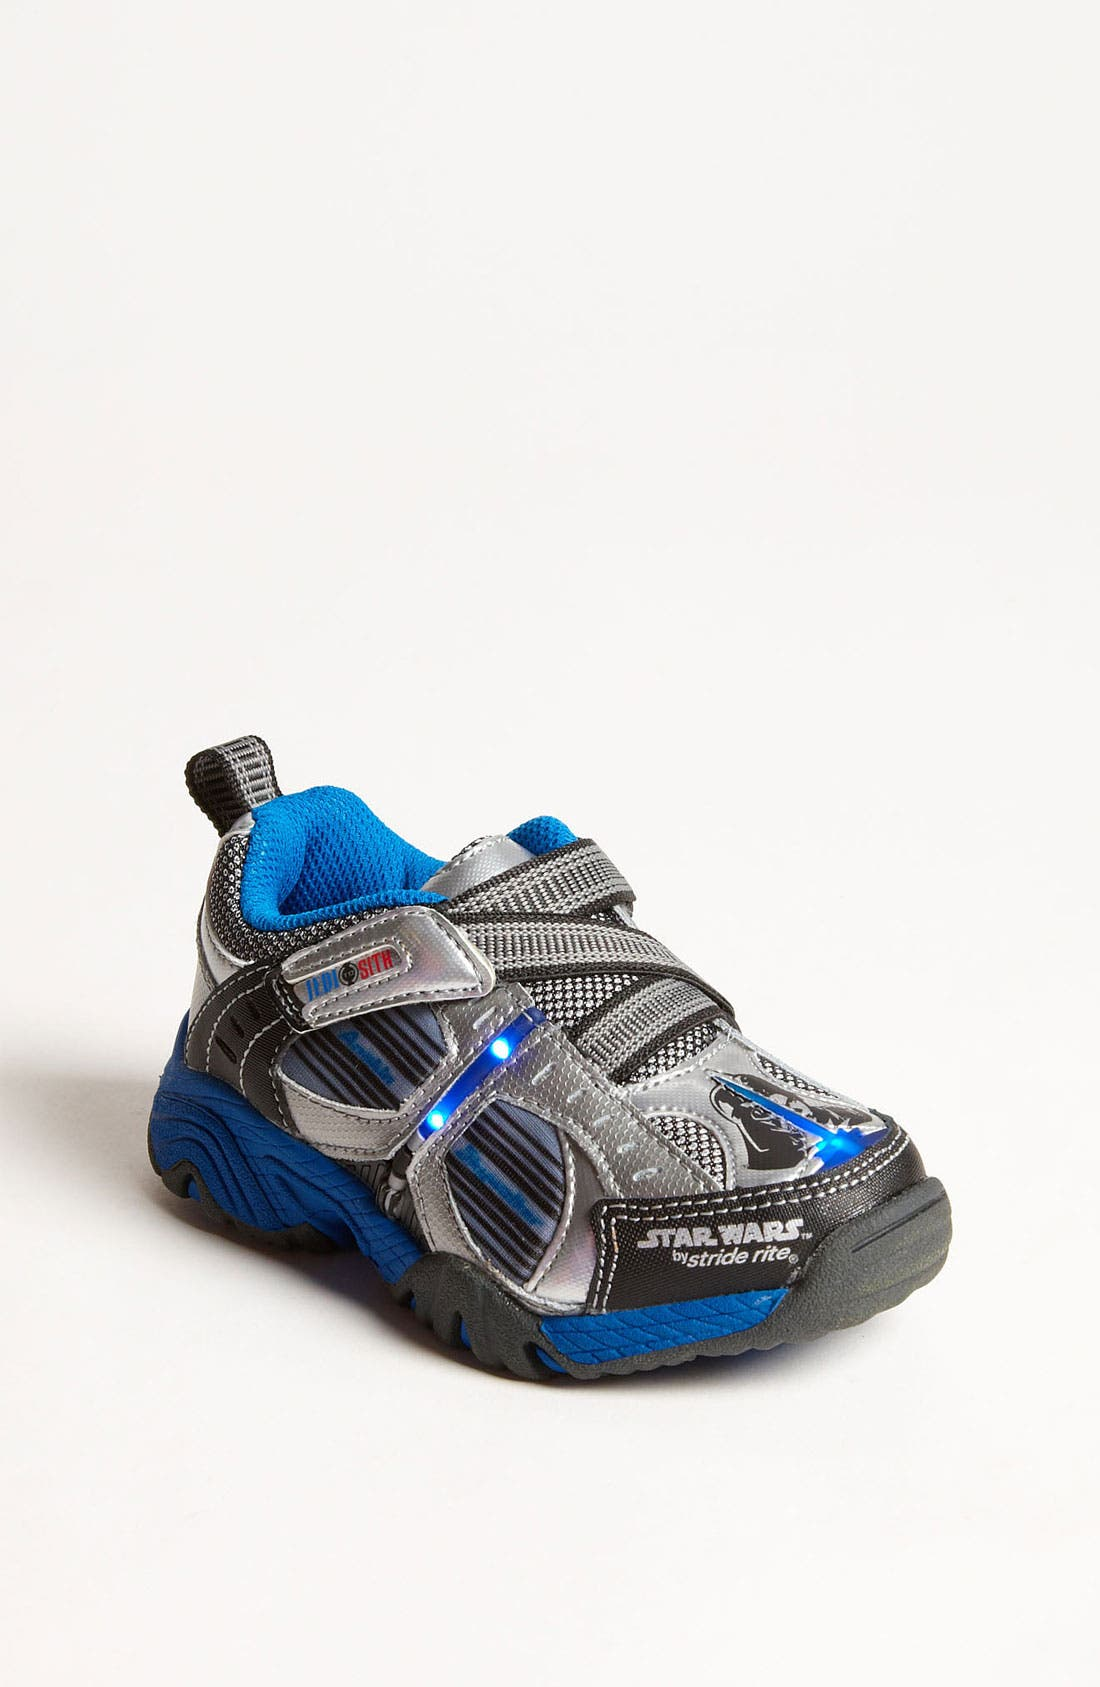 Main Image - Stride Rite 'Star Wars™ - Jedi to Sith Shadow Lights' Sneaker (Toddler & Little Kid)